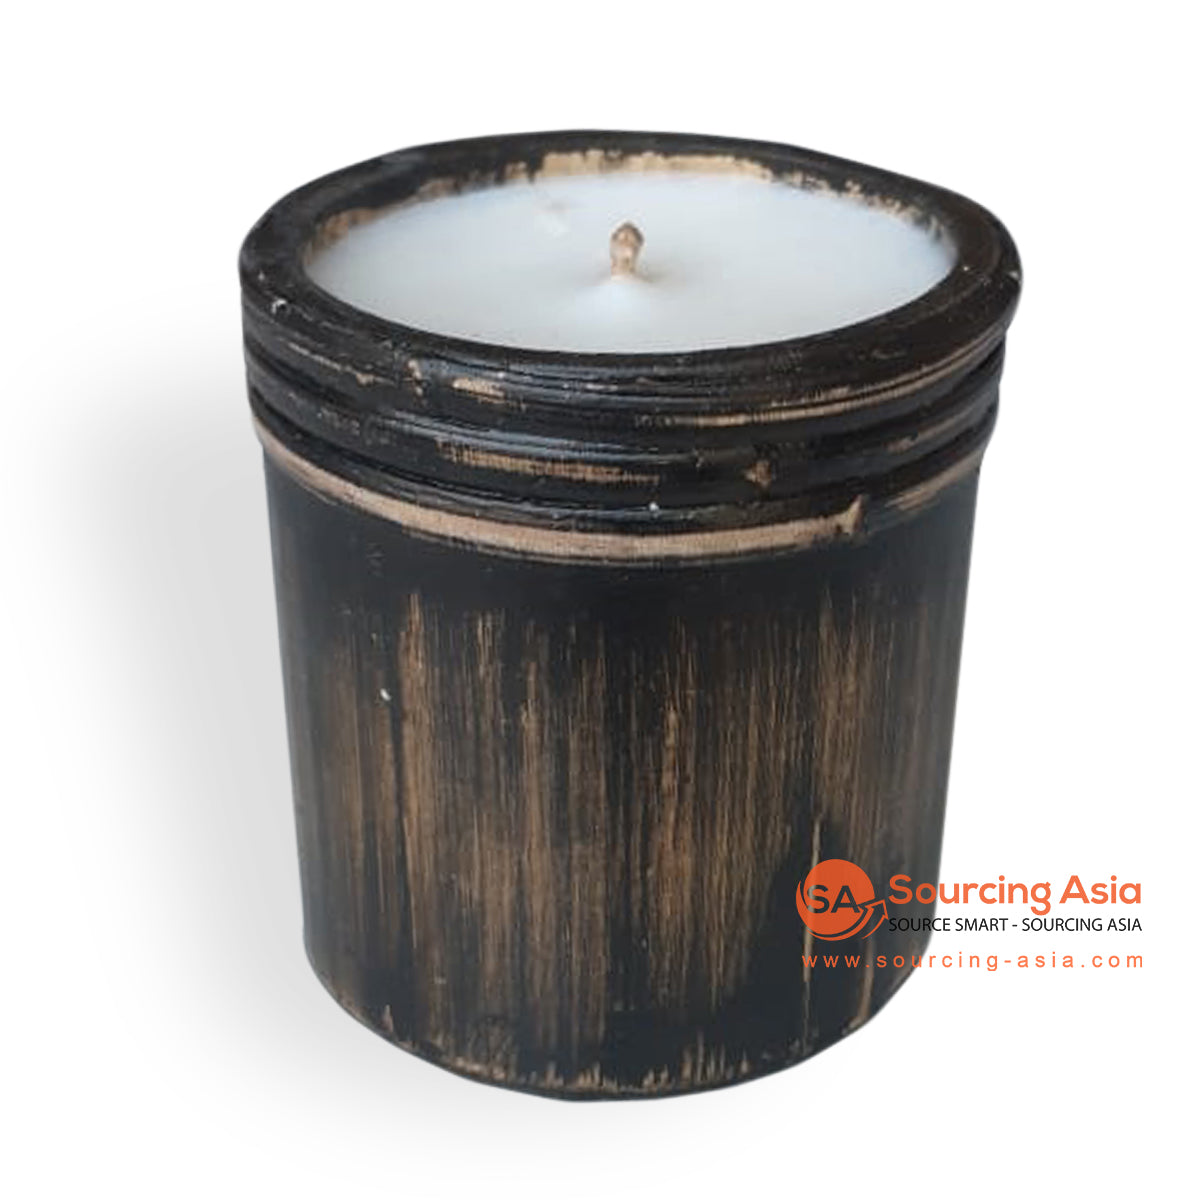 BSC018-4 CANDLE HOLDER